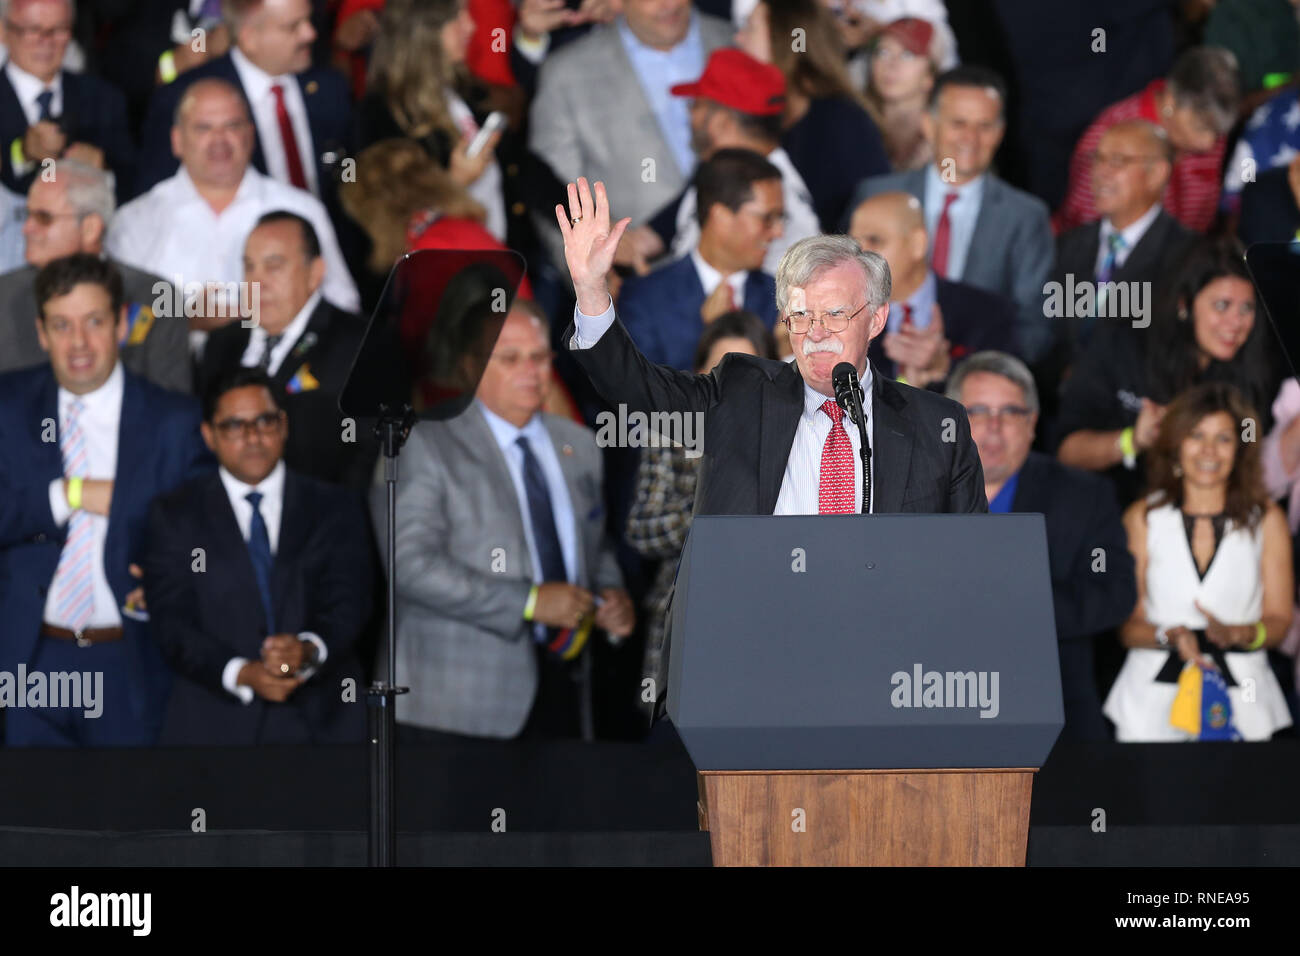 Miami, United States Of America. 18th Feb, 2019. President Donald Trump and First Lady Melania Trump attend a rally at Florida International University on February 18, 2019 in Miami, Florida. President Trump spoke about the ongoing crisis in Venezuela.  People: National Security Advisor John Bolton Credit: Storms Media Group/Alamy Live News Stock Photo